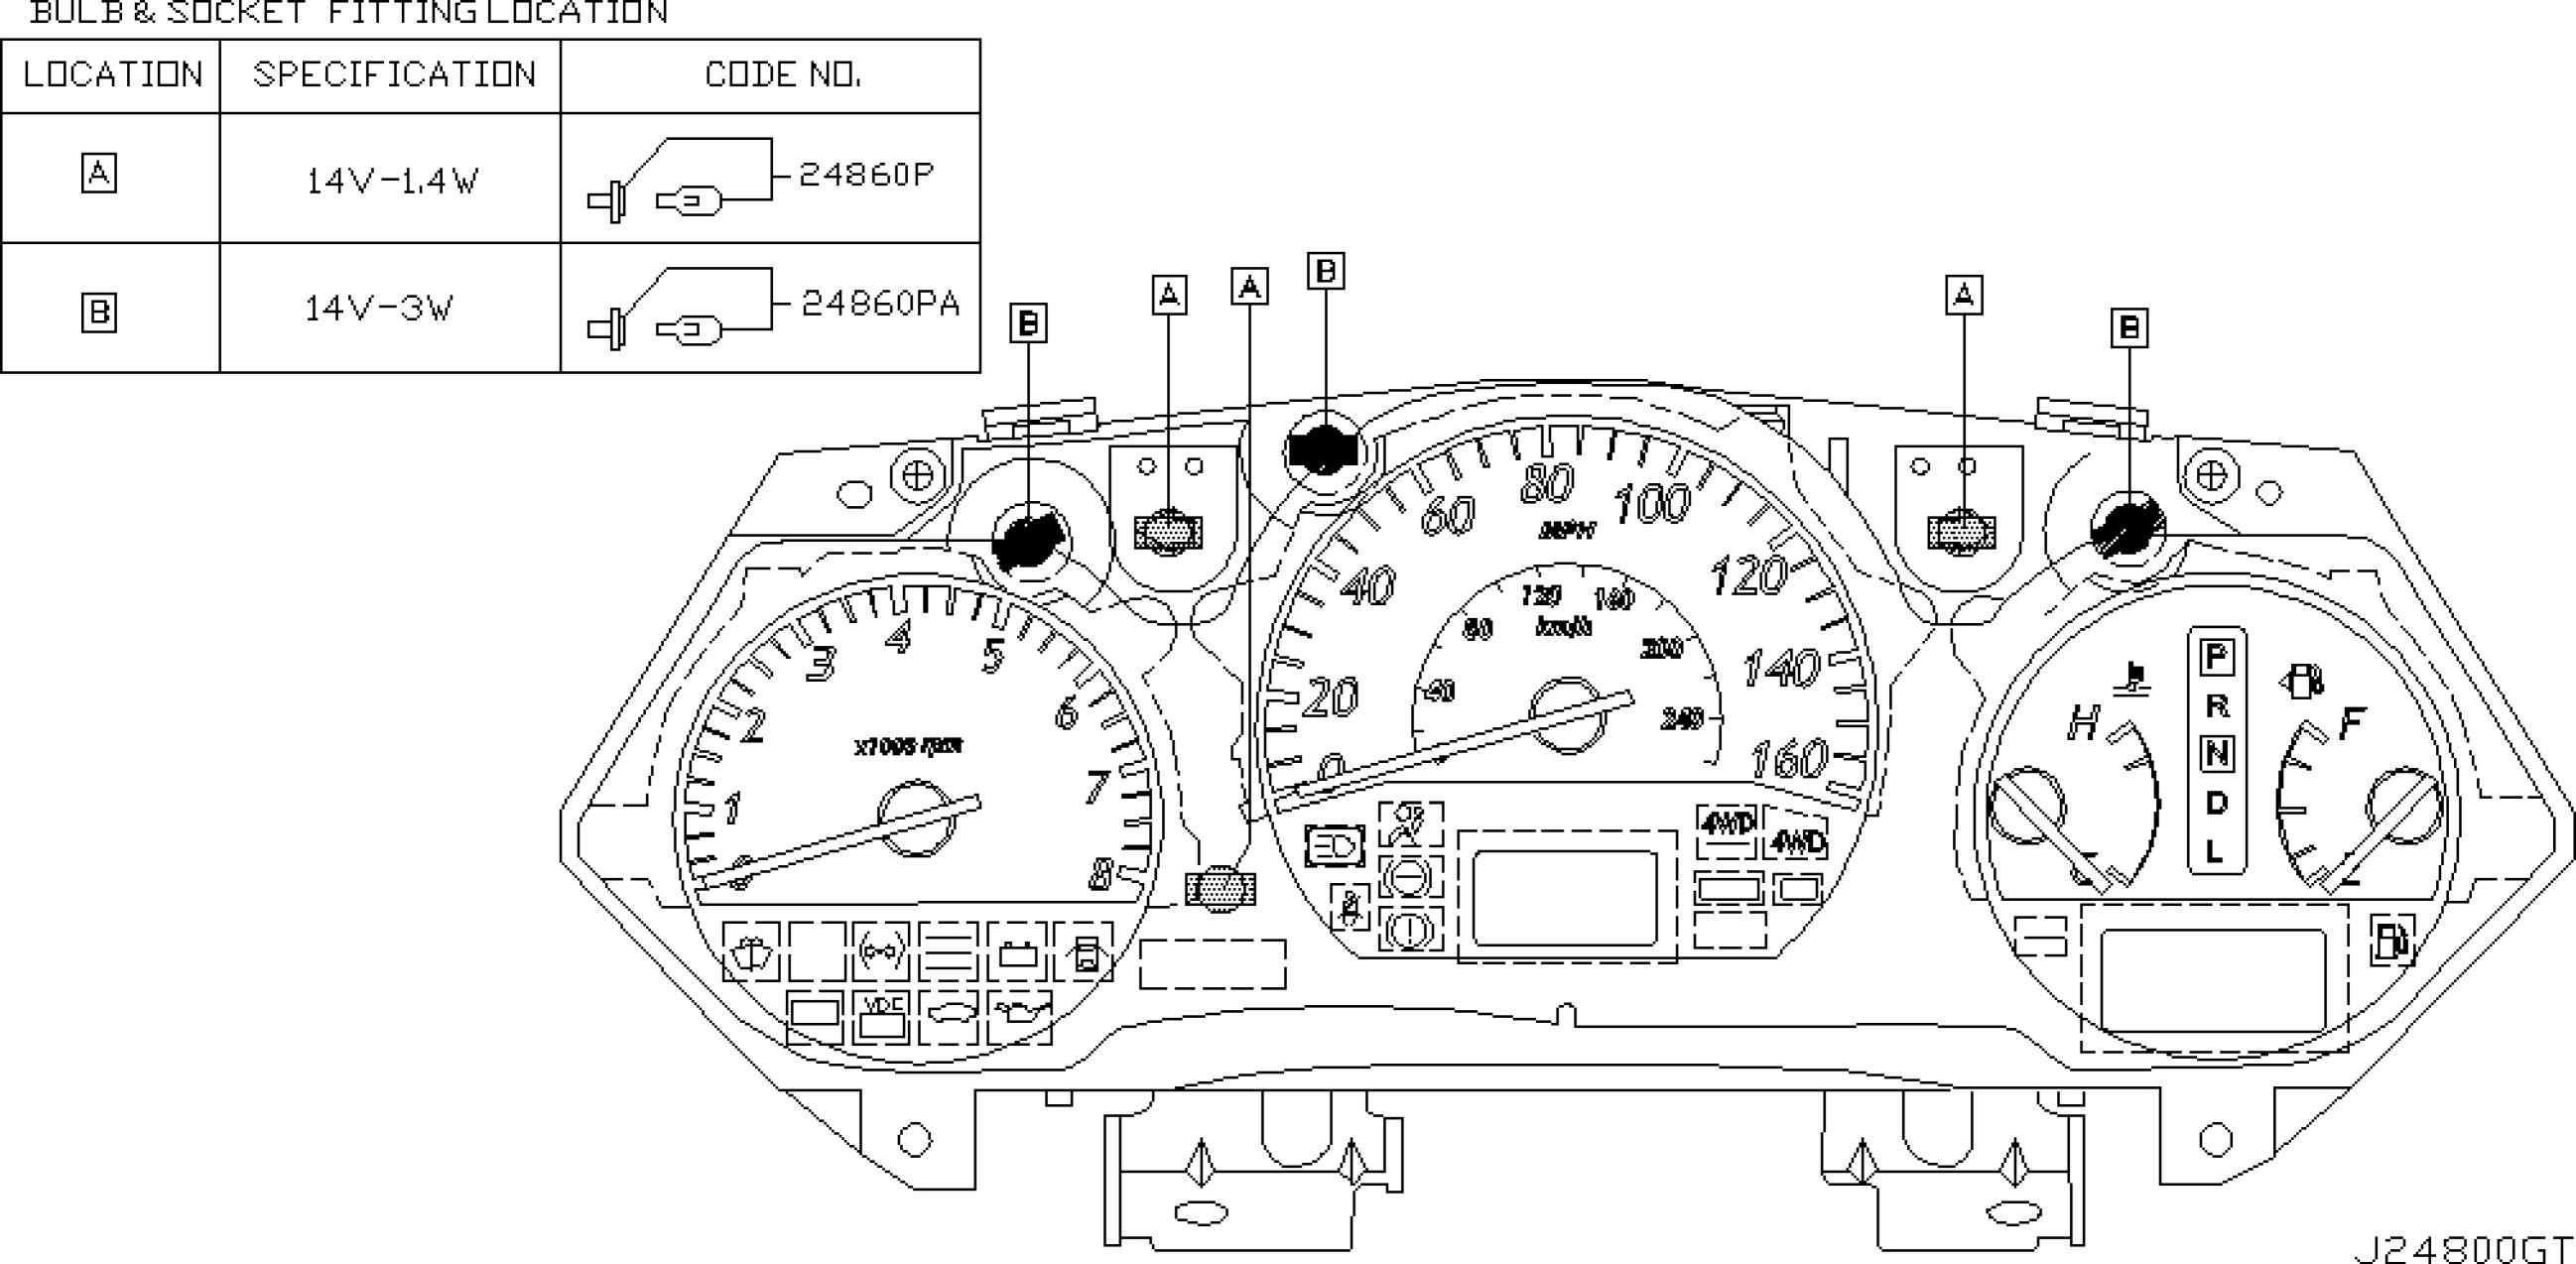 2008 Nissan Sentra Parts Diagram 2003 Nissan Murano Oem Parts Nissan Usa Estore Of 2008 Nissan Sentra Parts Diagram